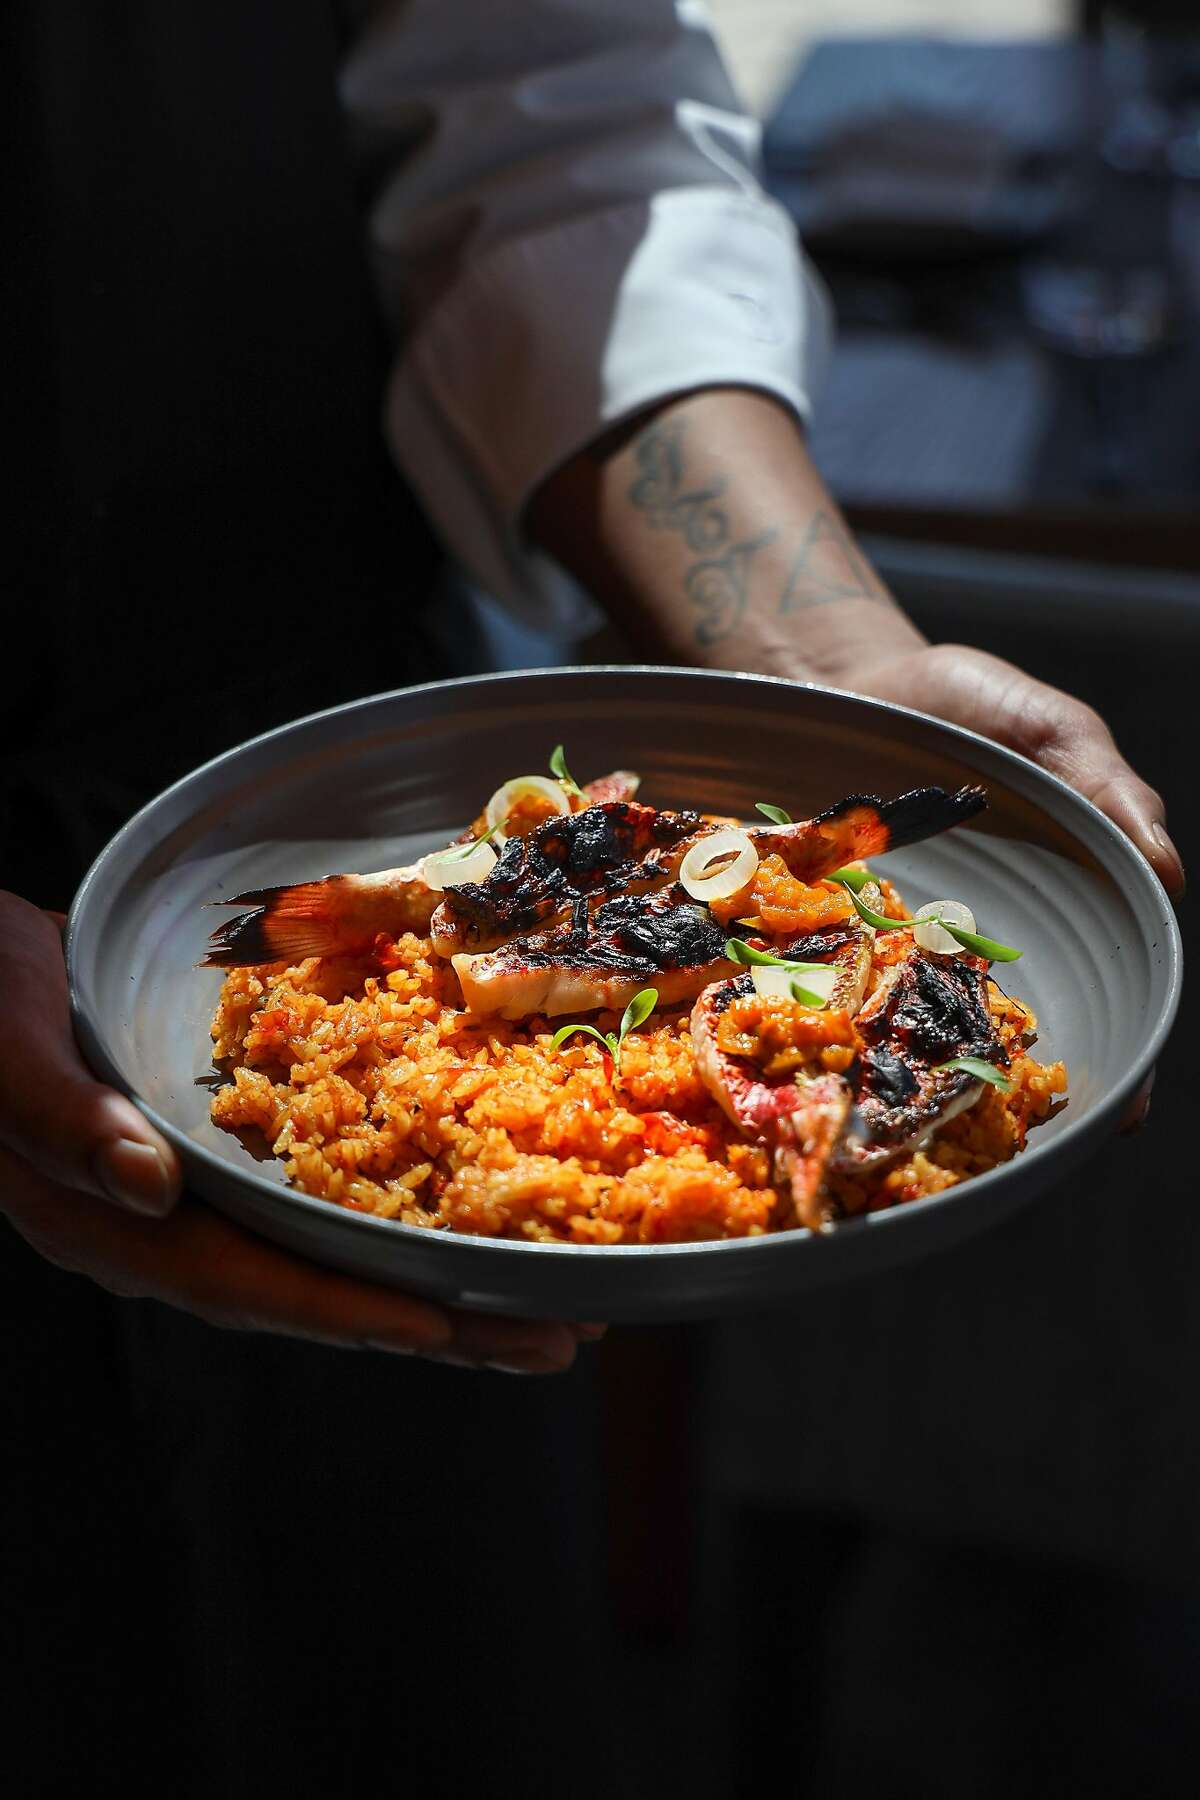 Crab Jollof Rice with Rouget at Kith and Kin in Washington, April 1, 2019. Chef Kwame Onwuachi vaulted from troubled youth to overnight success to failure with a fancy restaurant in Washington, D.C. Now he's drawing attention with a new book and approach. (Jennifer Chase/The New York Times)